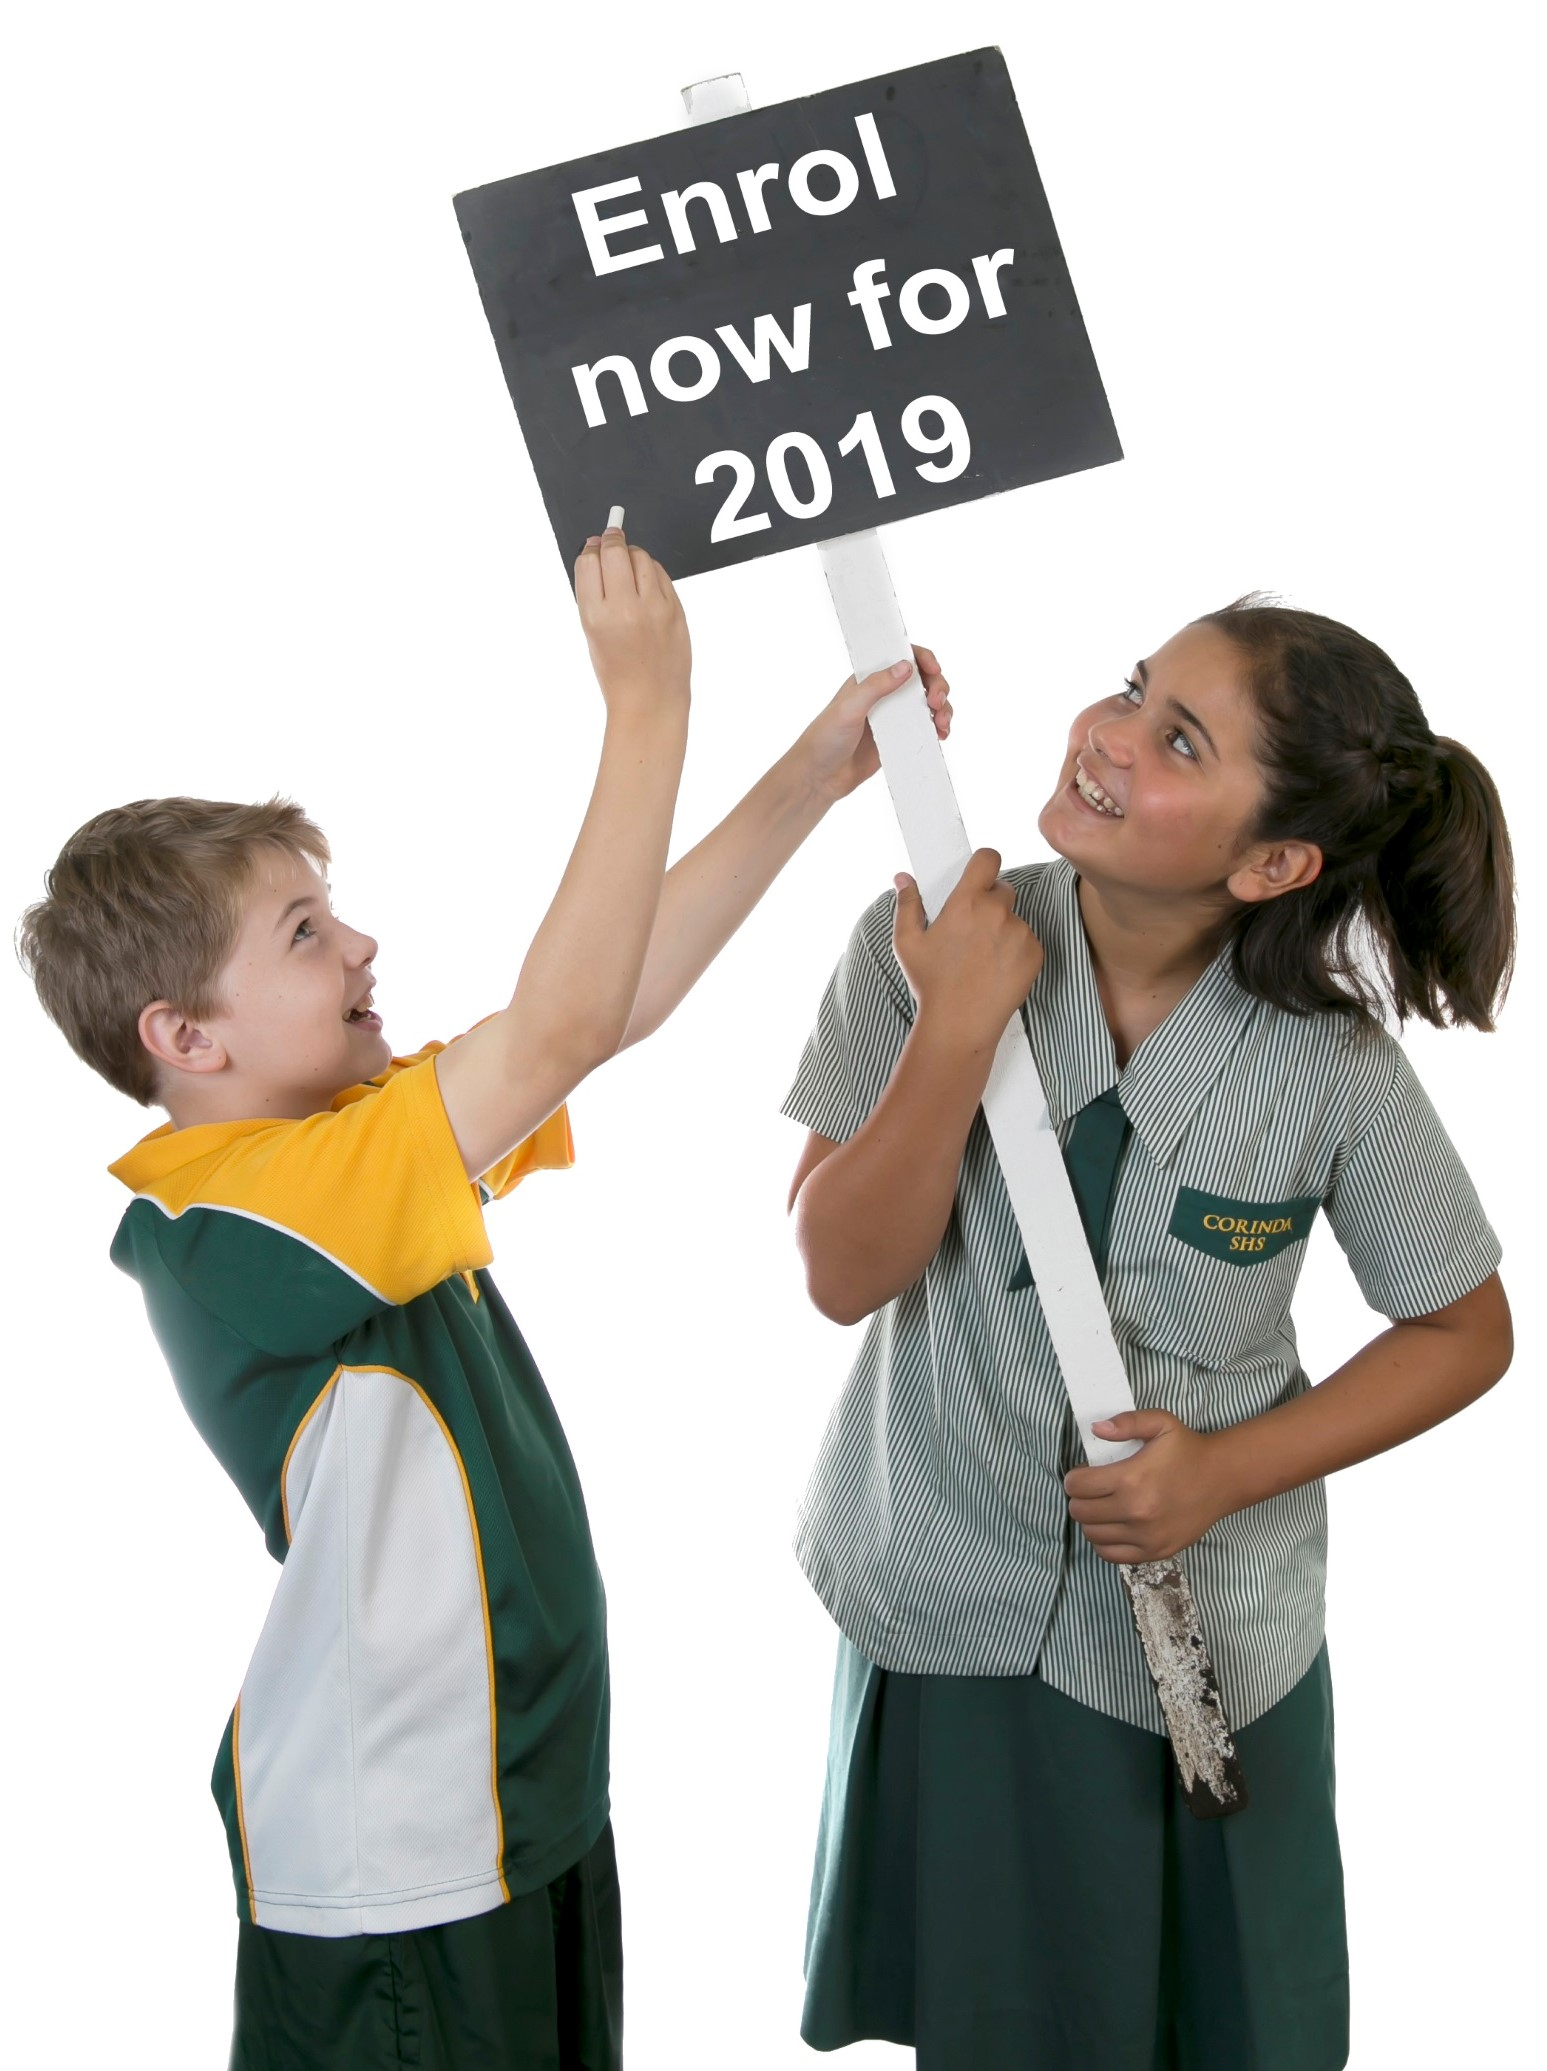 Students holding sign 'Enrol now for 2019'